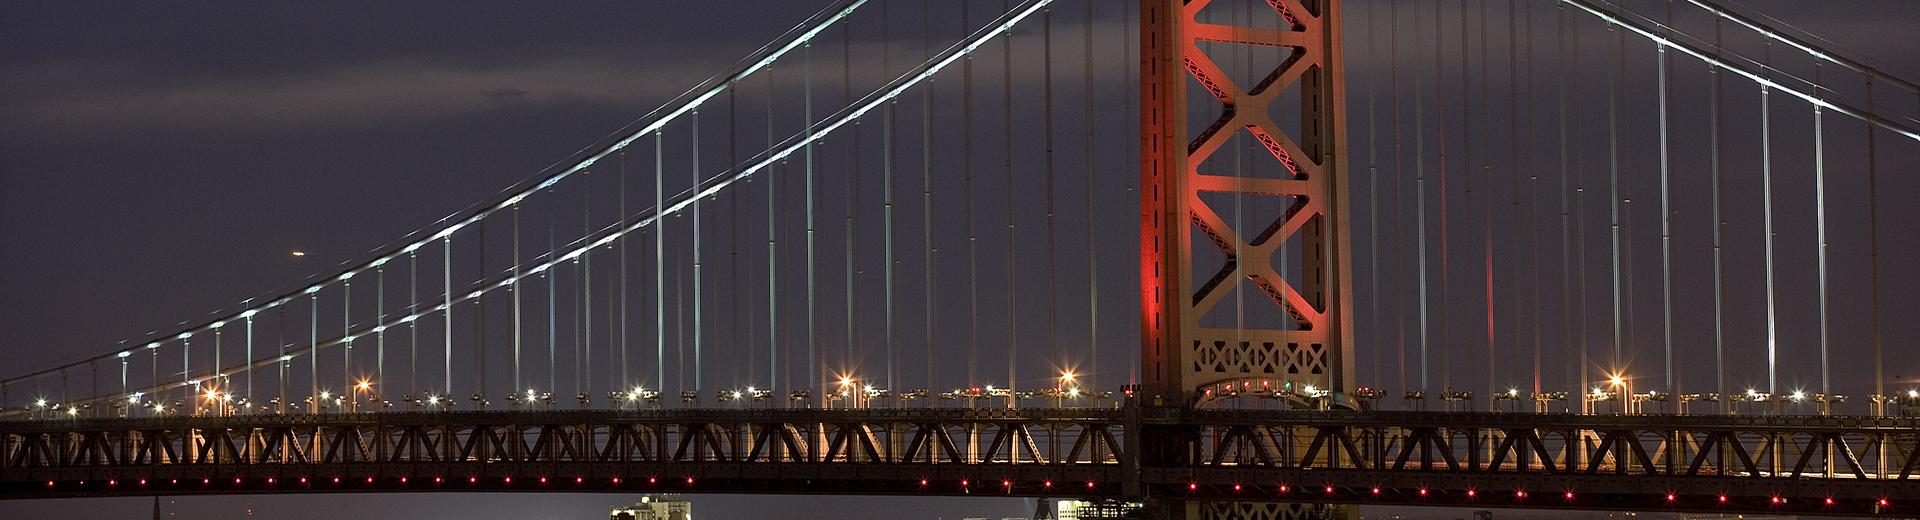 Benjamin Franklin bridge at night in Philadelphia